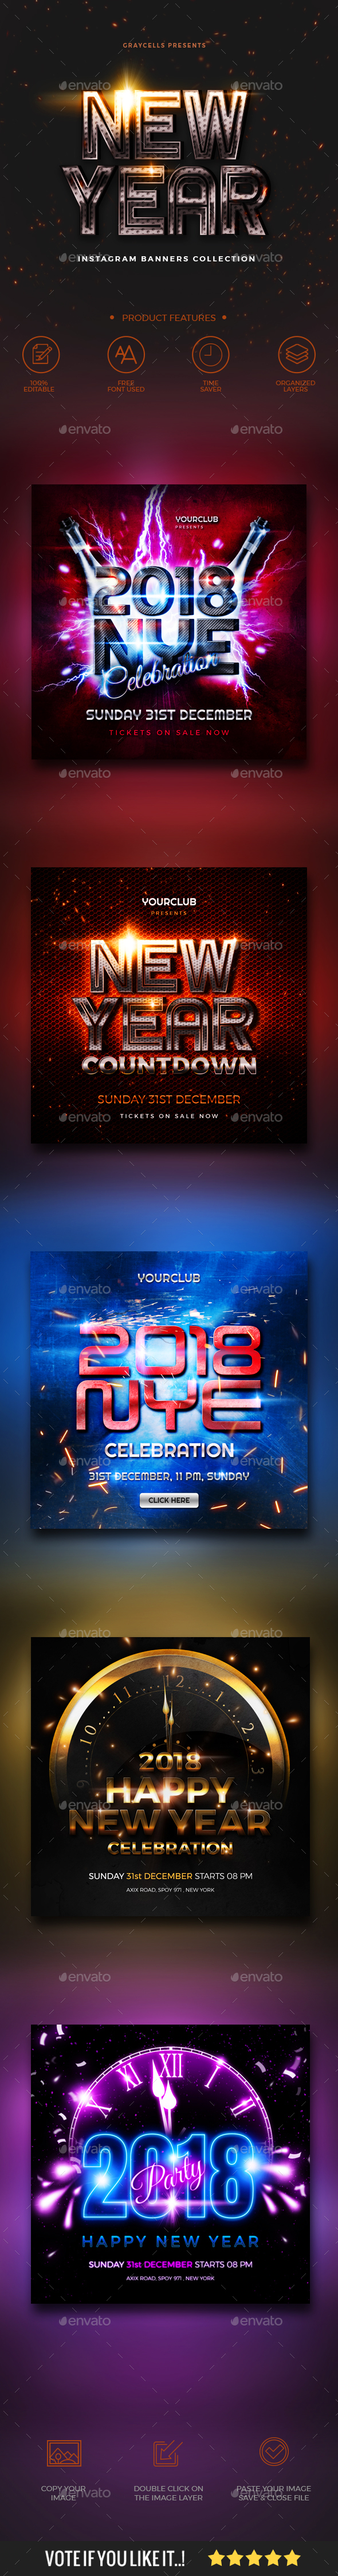 GraphicRiver New Year Instagram Banner 21087049